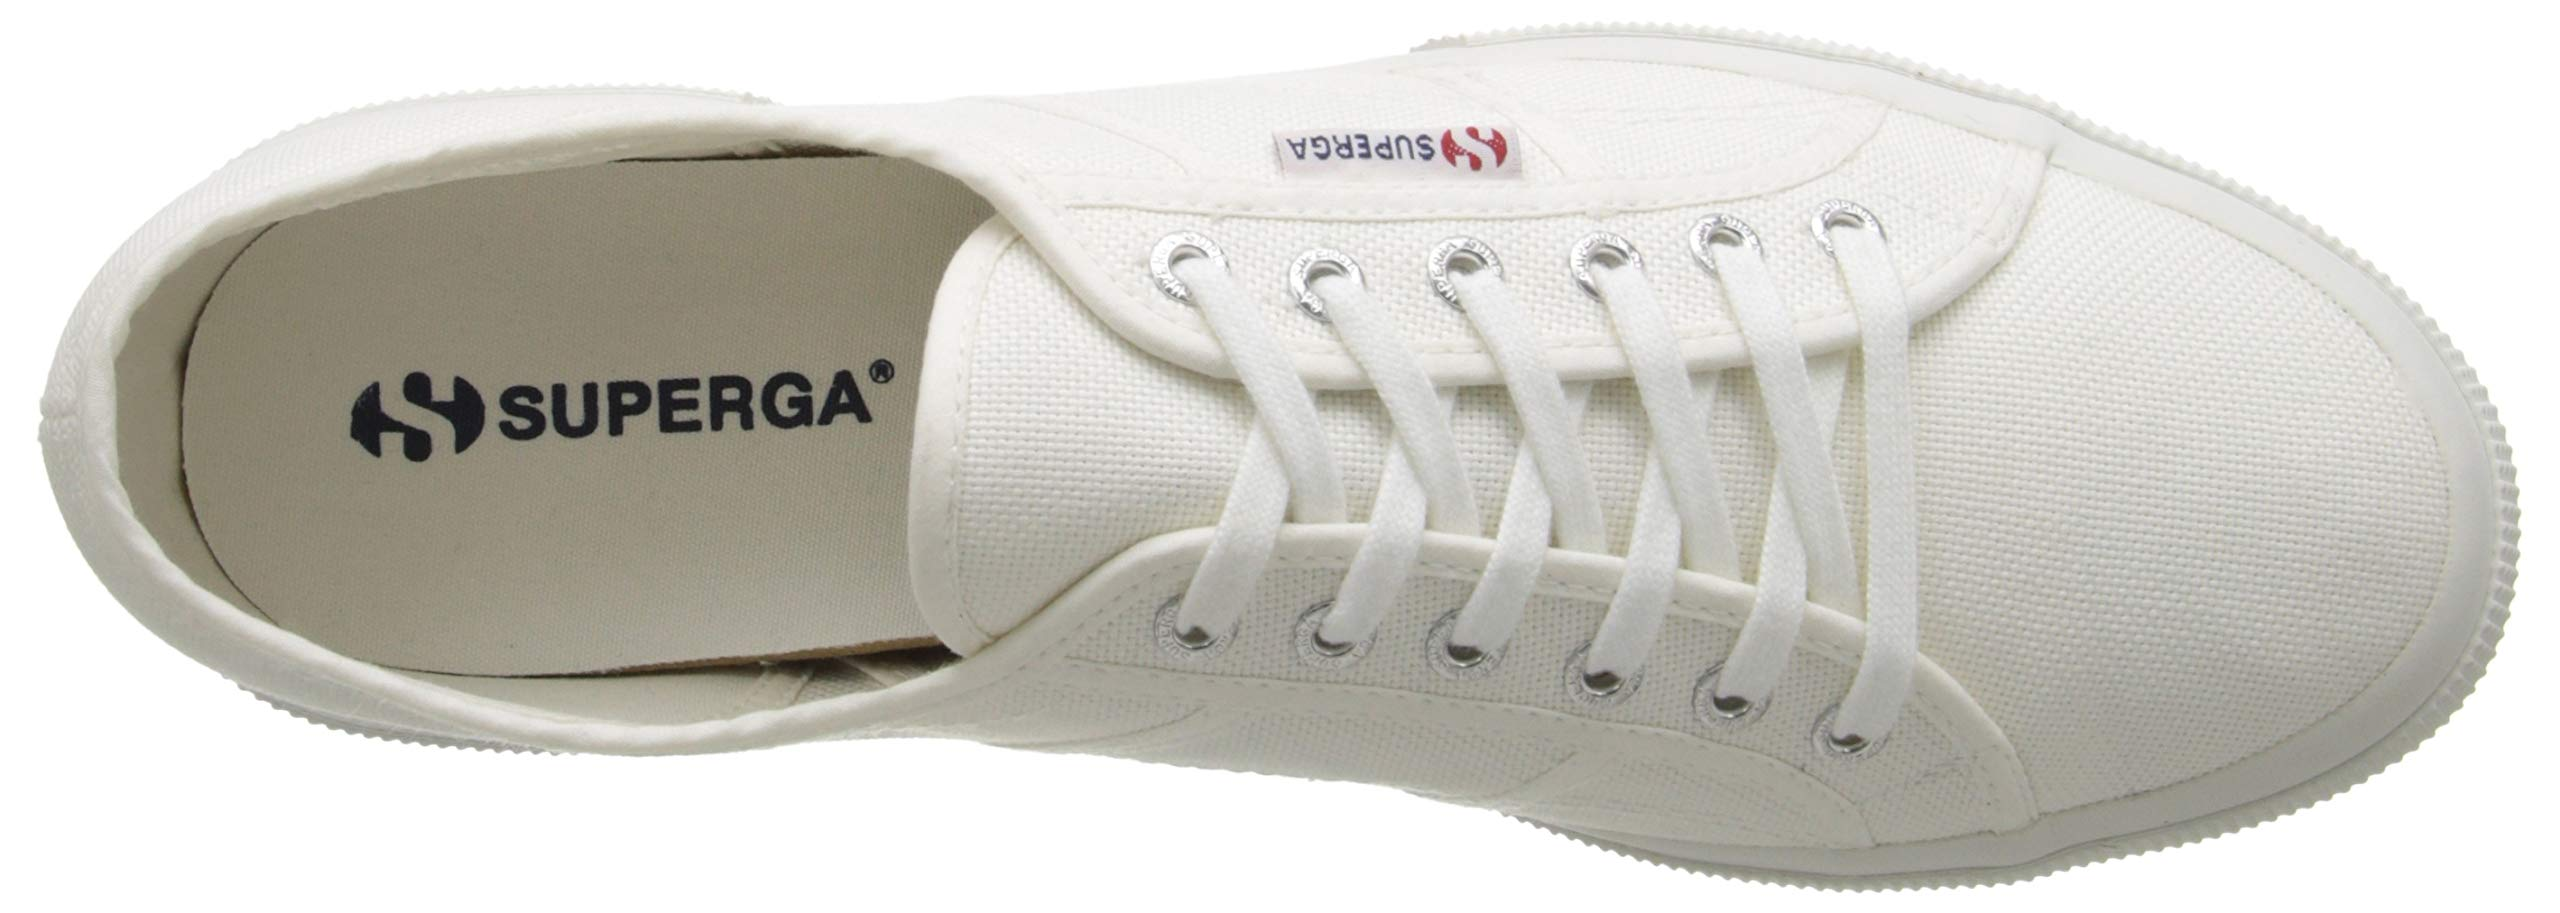 Superga 2750 Cotu Classic, Unisex Adults' Low-Top Sneakers, White, 7.5 UK (41.5 EU) by Superga (Image #9)